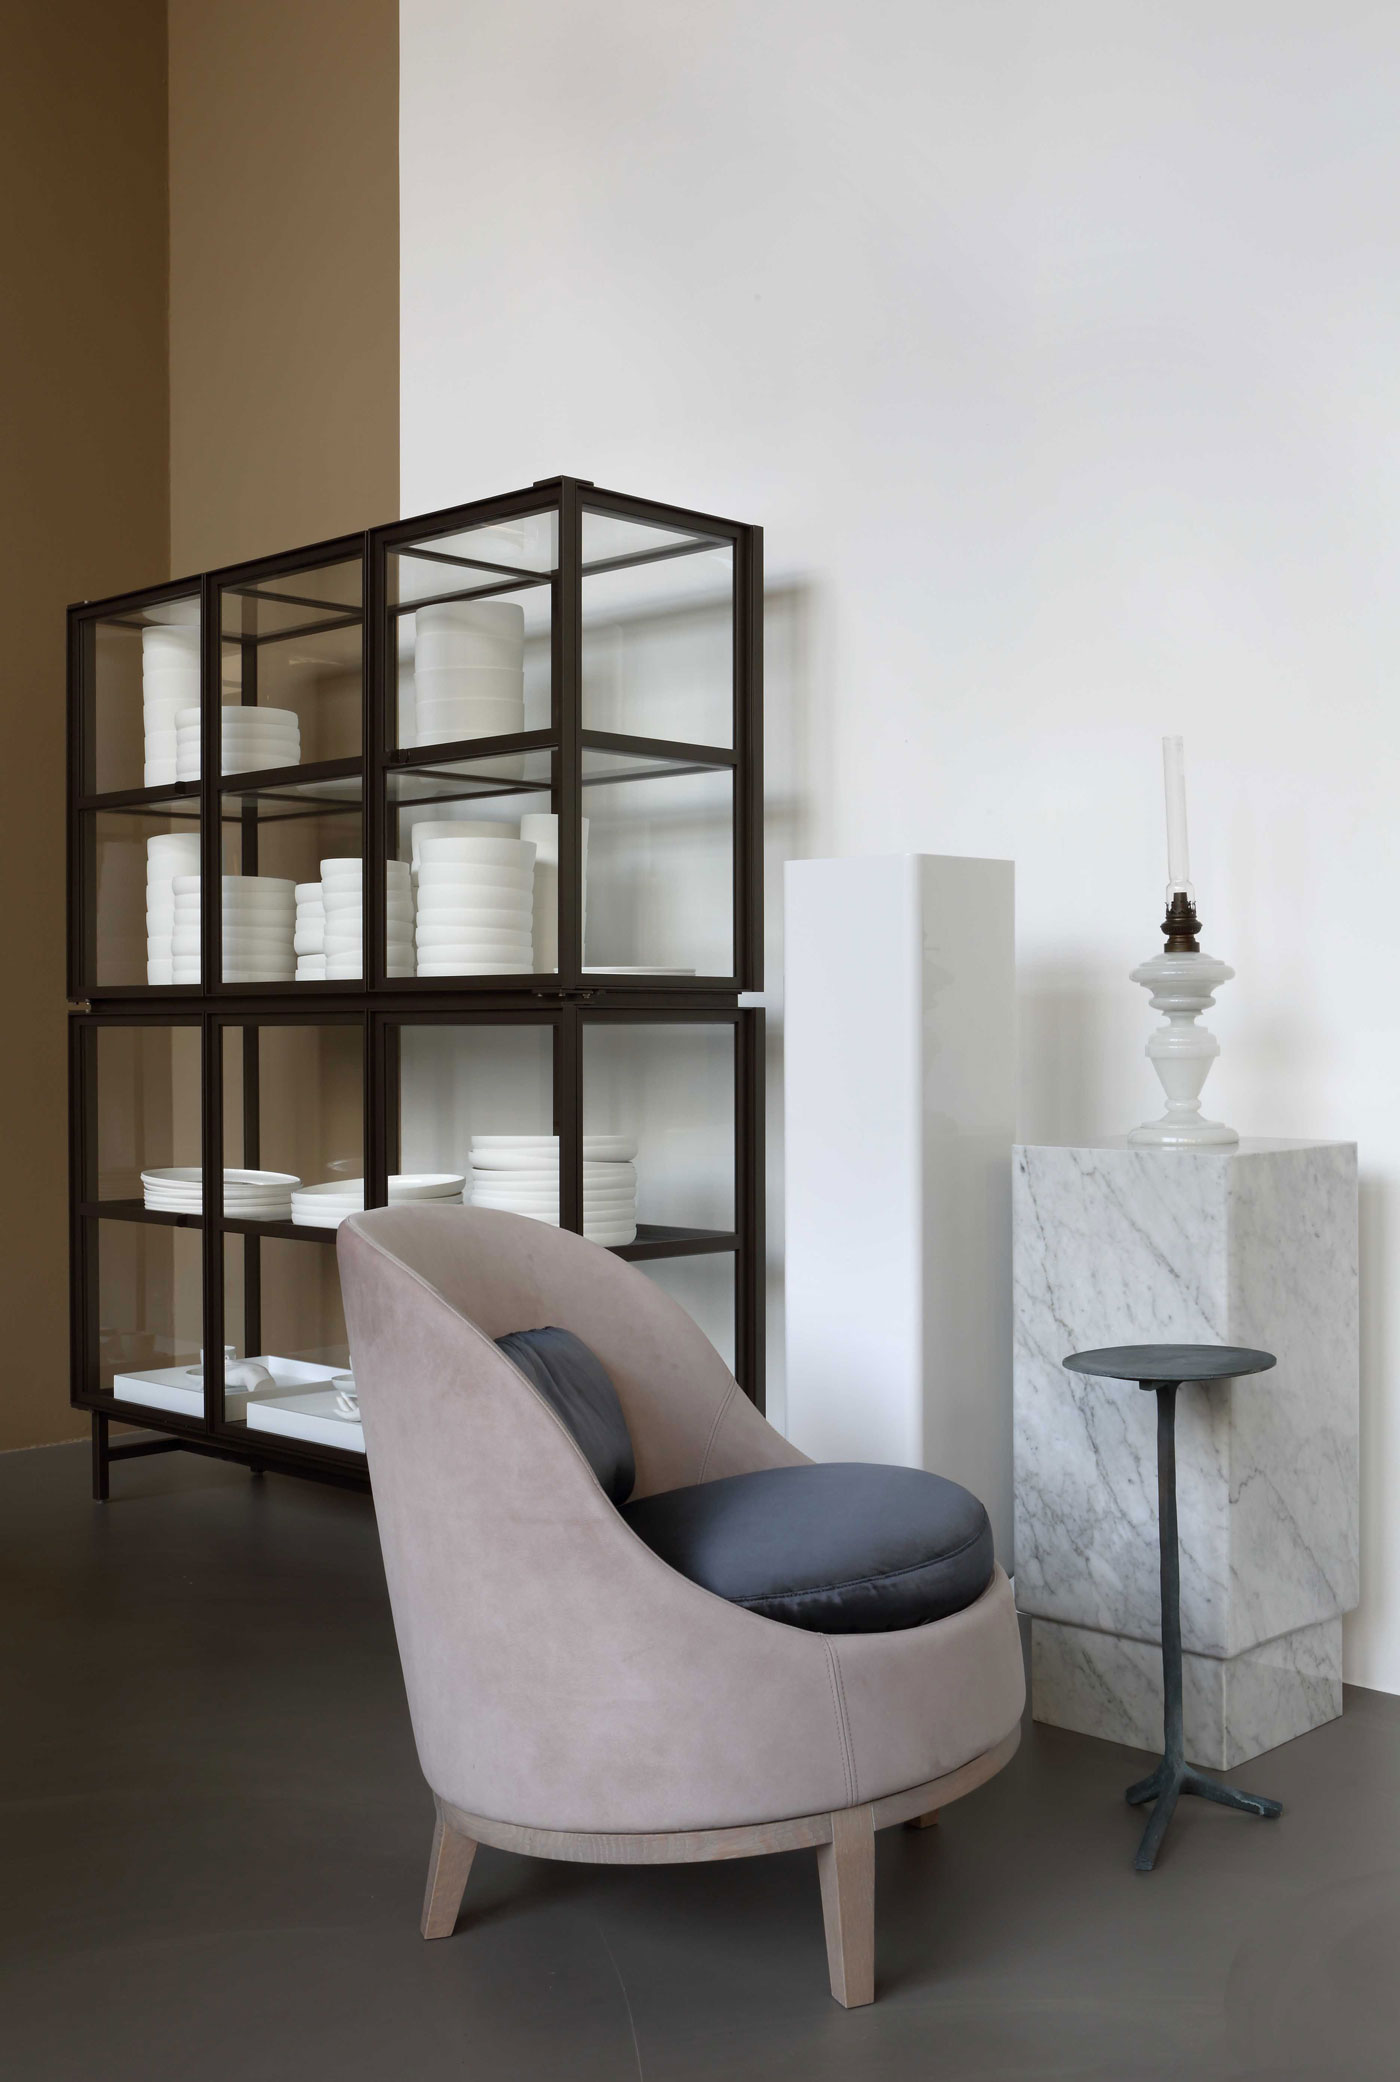 In Milan, The Studio Commemorated The Ten Year Anniversary Of The Piet Boon  Collection And Expanded Its 2015 Furniture Collection By Combining New  Designs ...